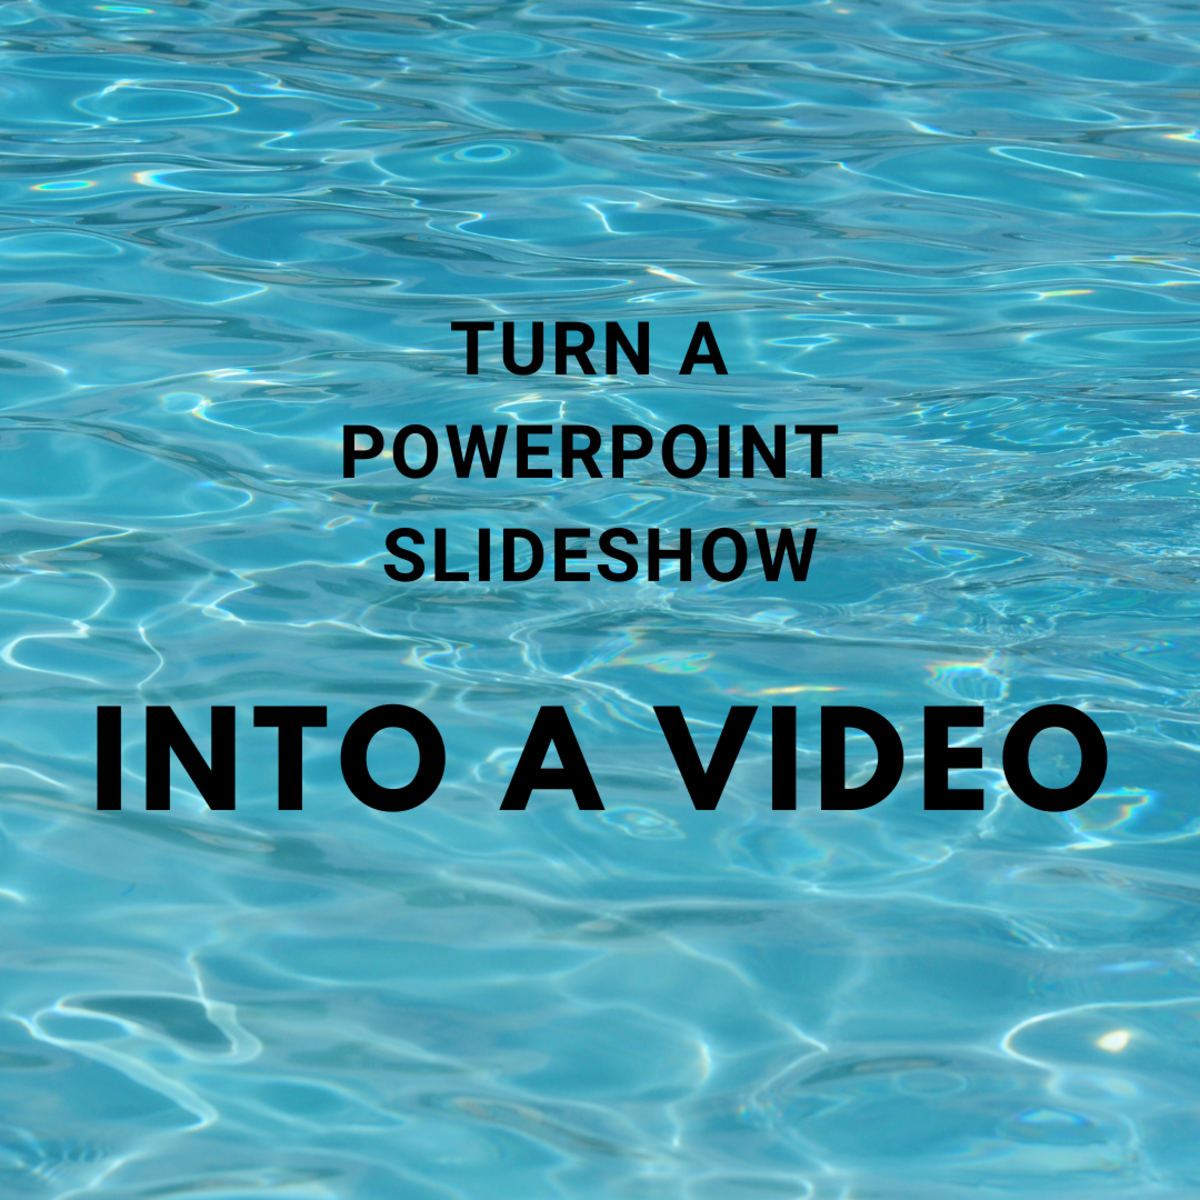 I'll show you how to create a video from your PowerPoint slideshow